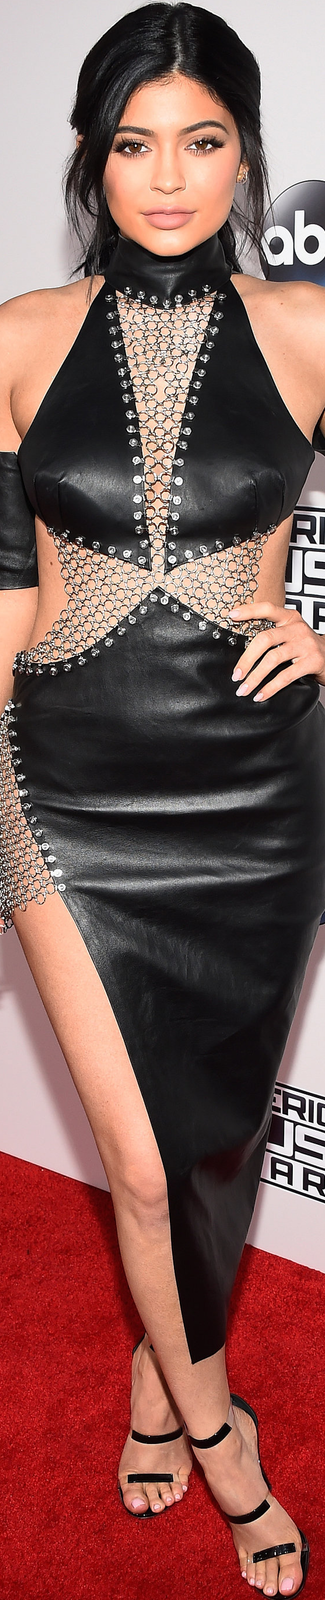 Kylie Jenner 2015 American Music Awards